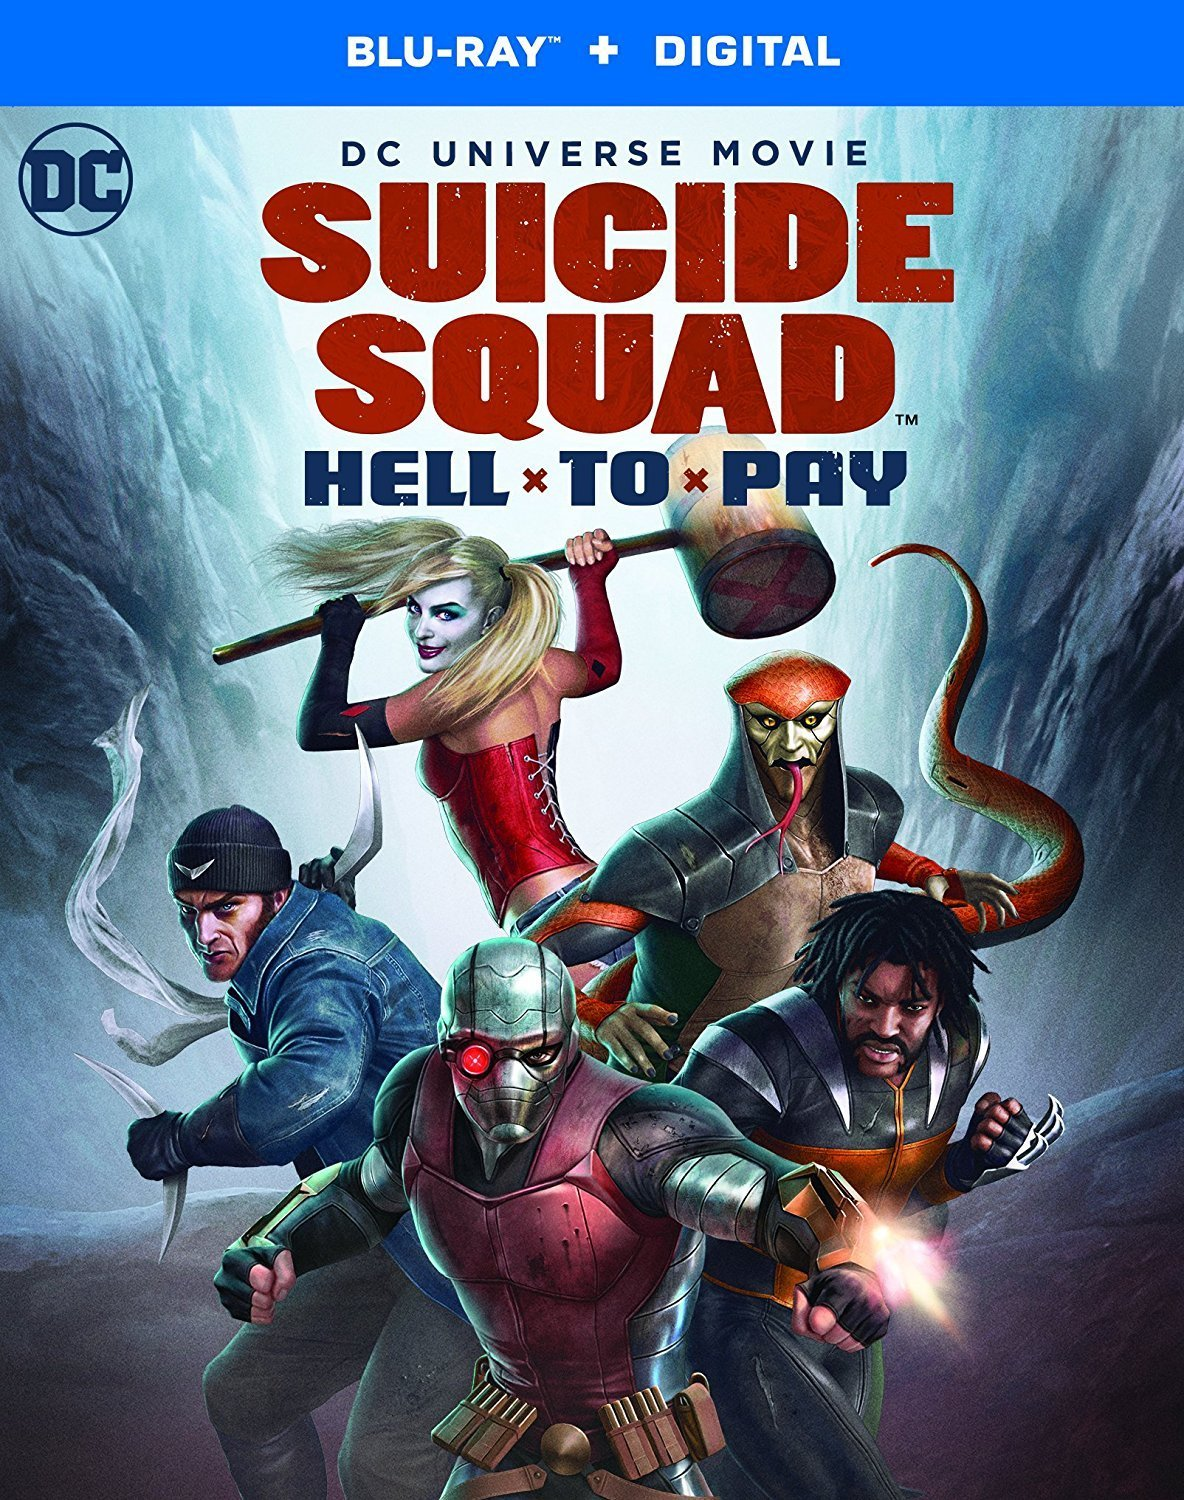 Those that read Blazing Minds will have seen the many DC Universe Movies and Warner Bros. Animation movies, such as Gotham by Gaslight, Batman Vs. Two-Face and Batman and Harley Quinn that we have reviewed, now we have news of the release dates for Suicide Squad: Hell To Pay.